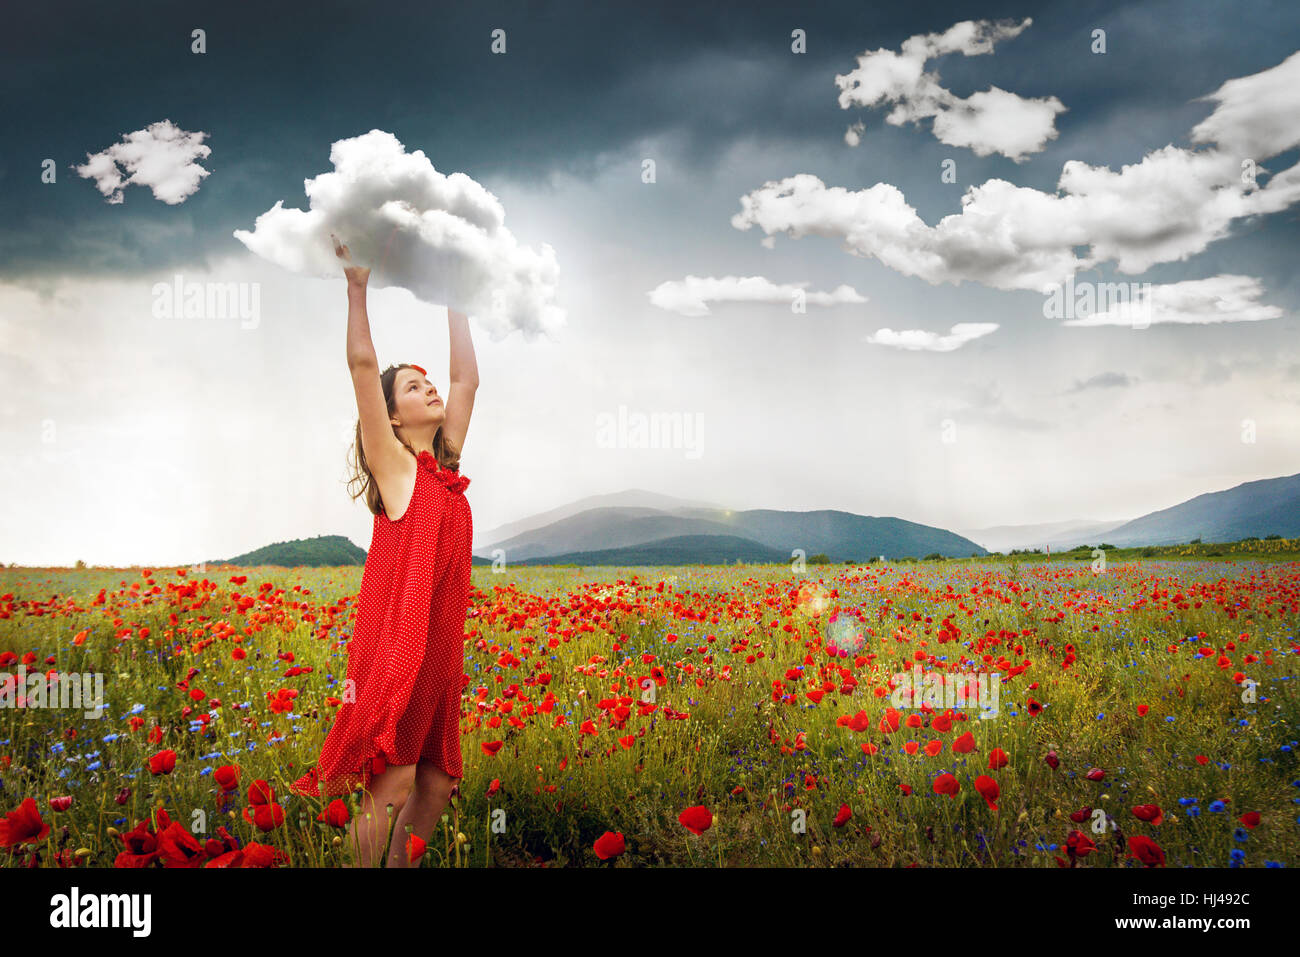 Surreal lifestyle image of young girl in field off poppies catching clouds. - Stock Image